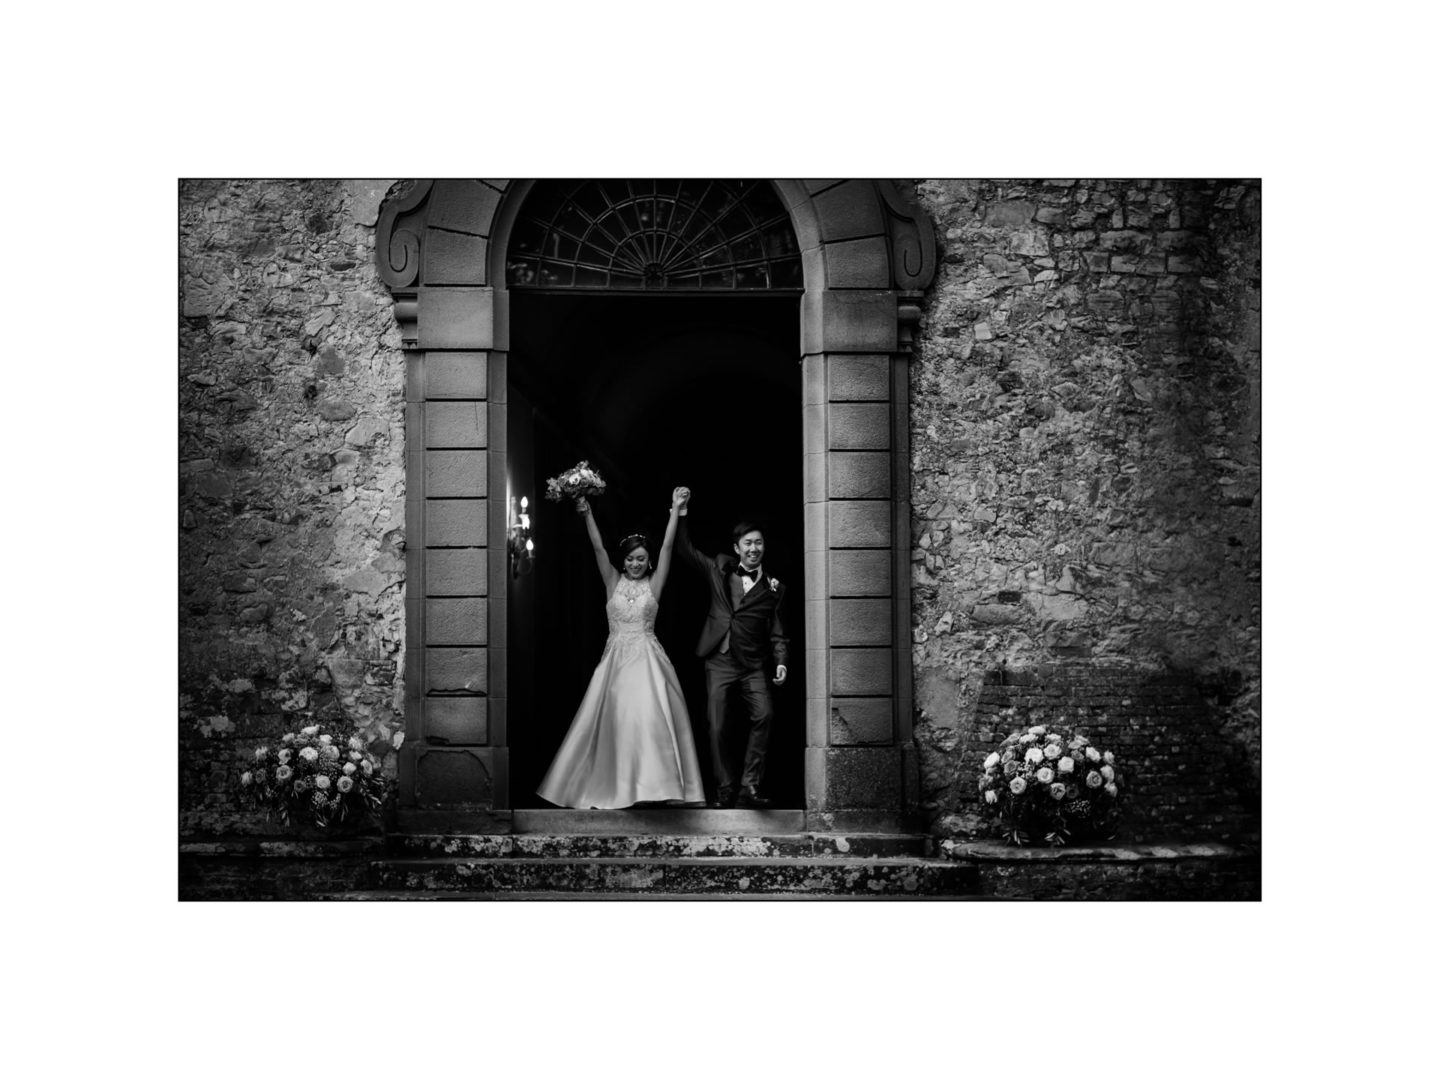 castello-di-meleto-david-bastianoni-photographer-00038 :: Black and white wedding_ Castello di Meleto :: Luxury wedding photography - 37 :: castello-di-meleto-david-bastianoni-photographer-00038